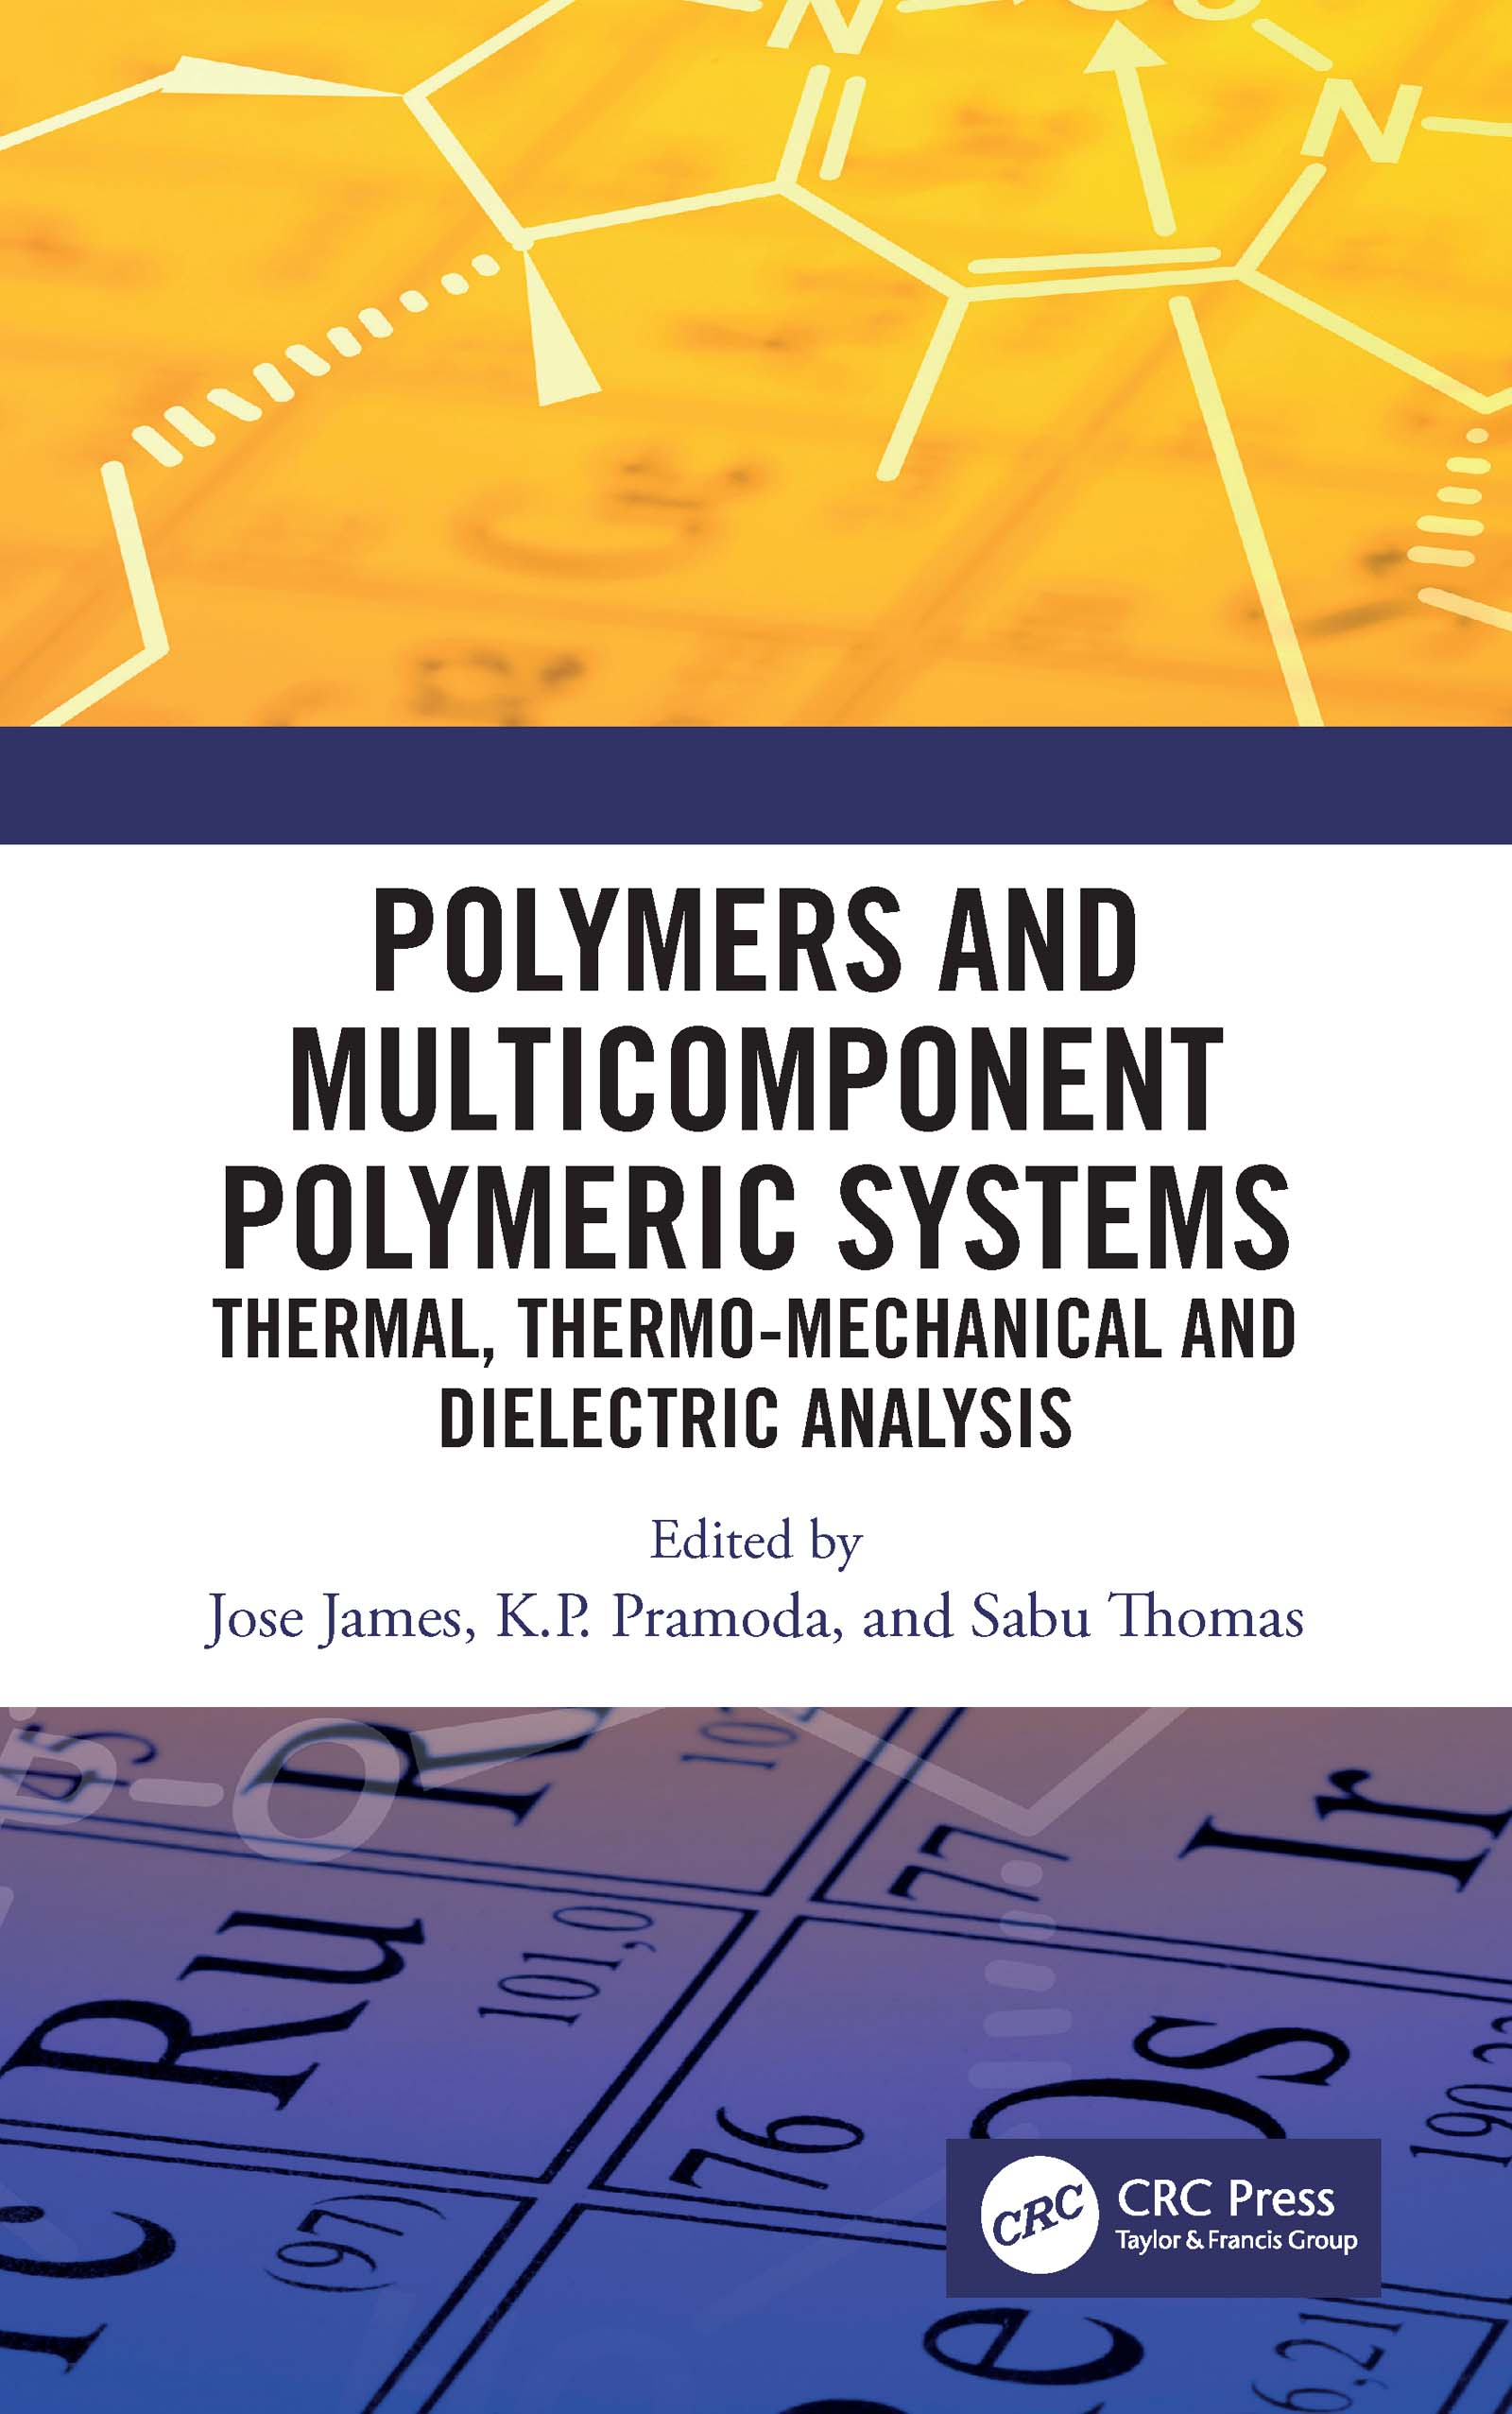 Polymers and Multicomponent Polymeric Systems: Thermal, Thermo-Mechanical and Dielectric Analysis book cover